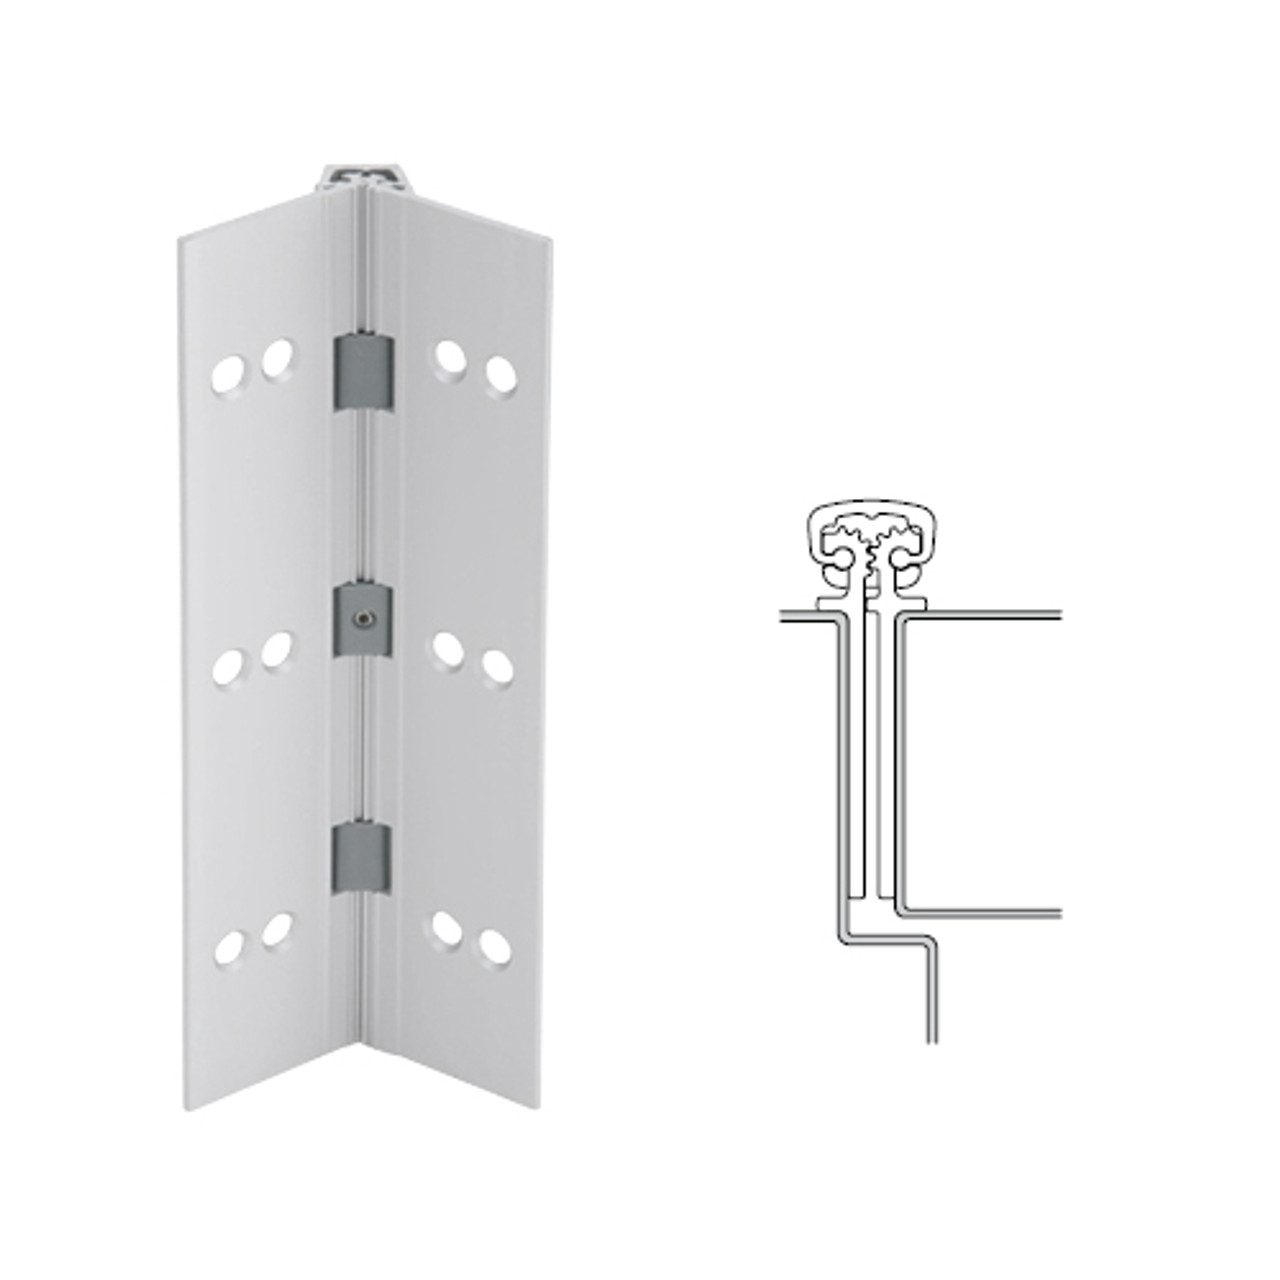 027XY-US28-95-SECWDHM IVES Full Mortise Continuous Geared Hinges with Security Screws - Hex Pin Drive in Satin Aluminum